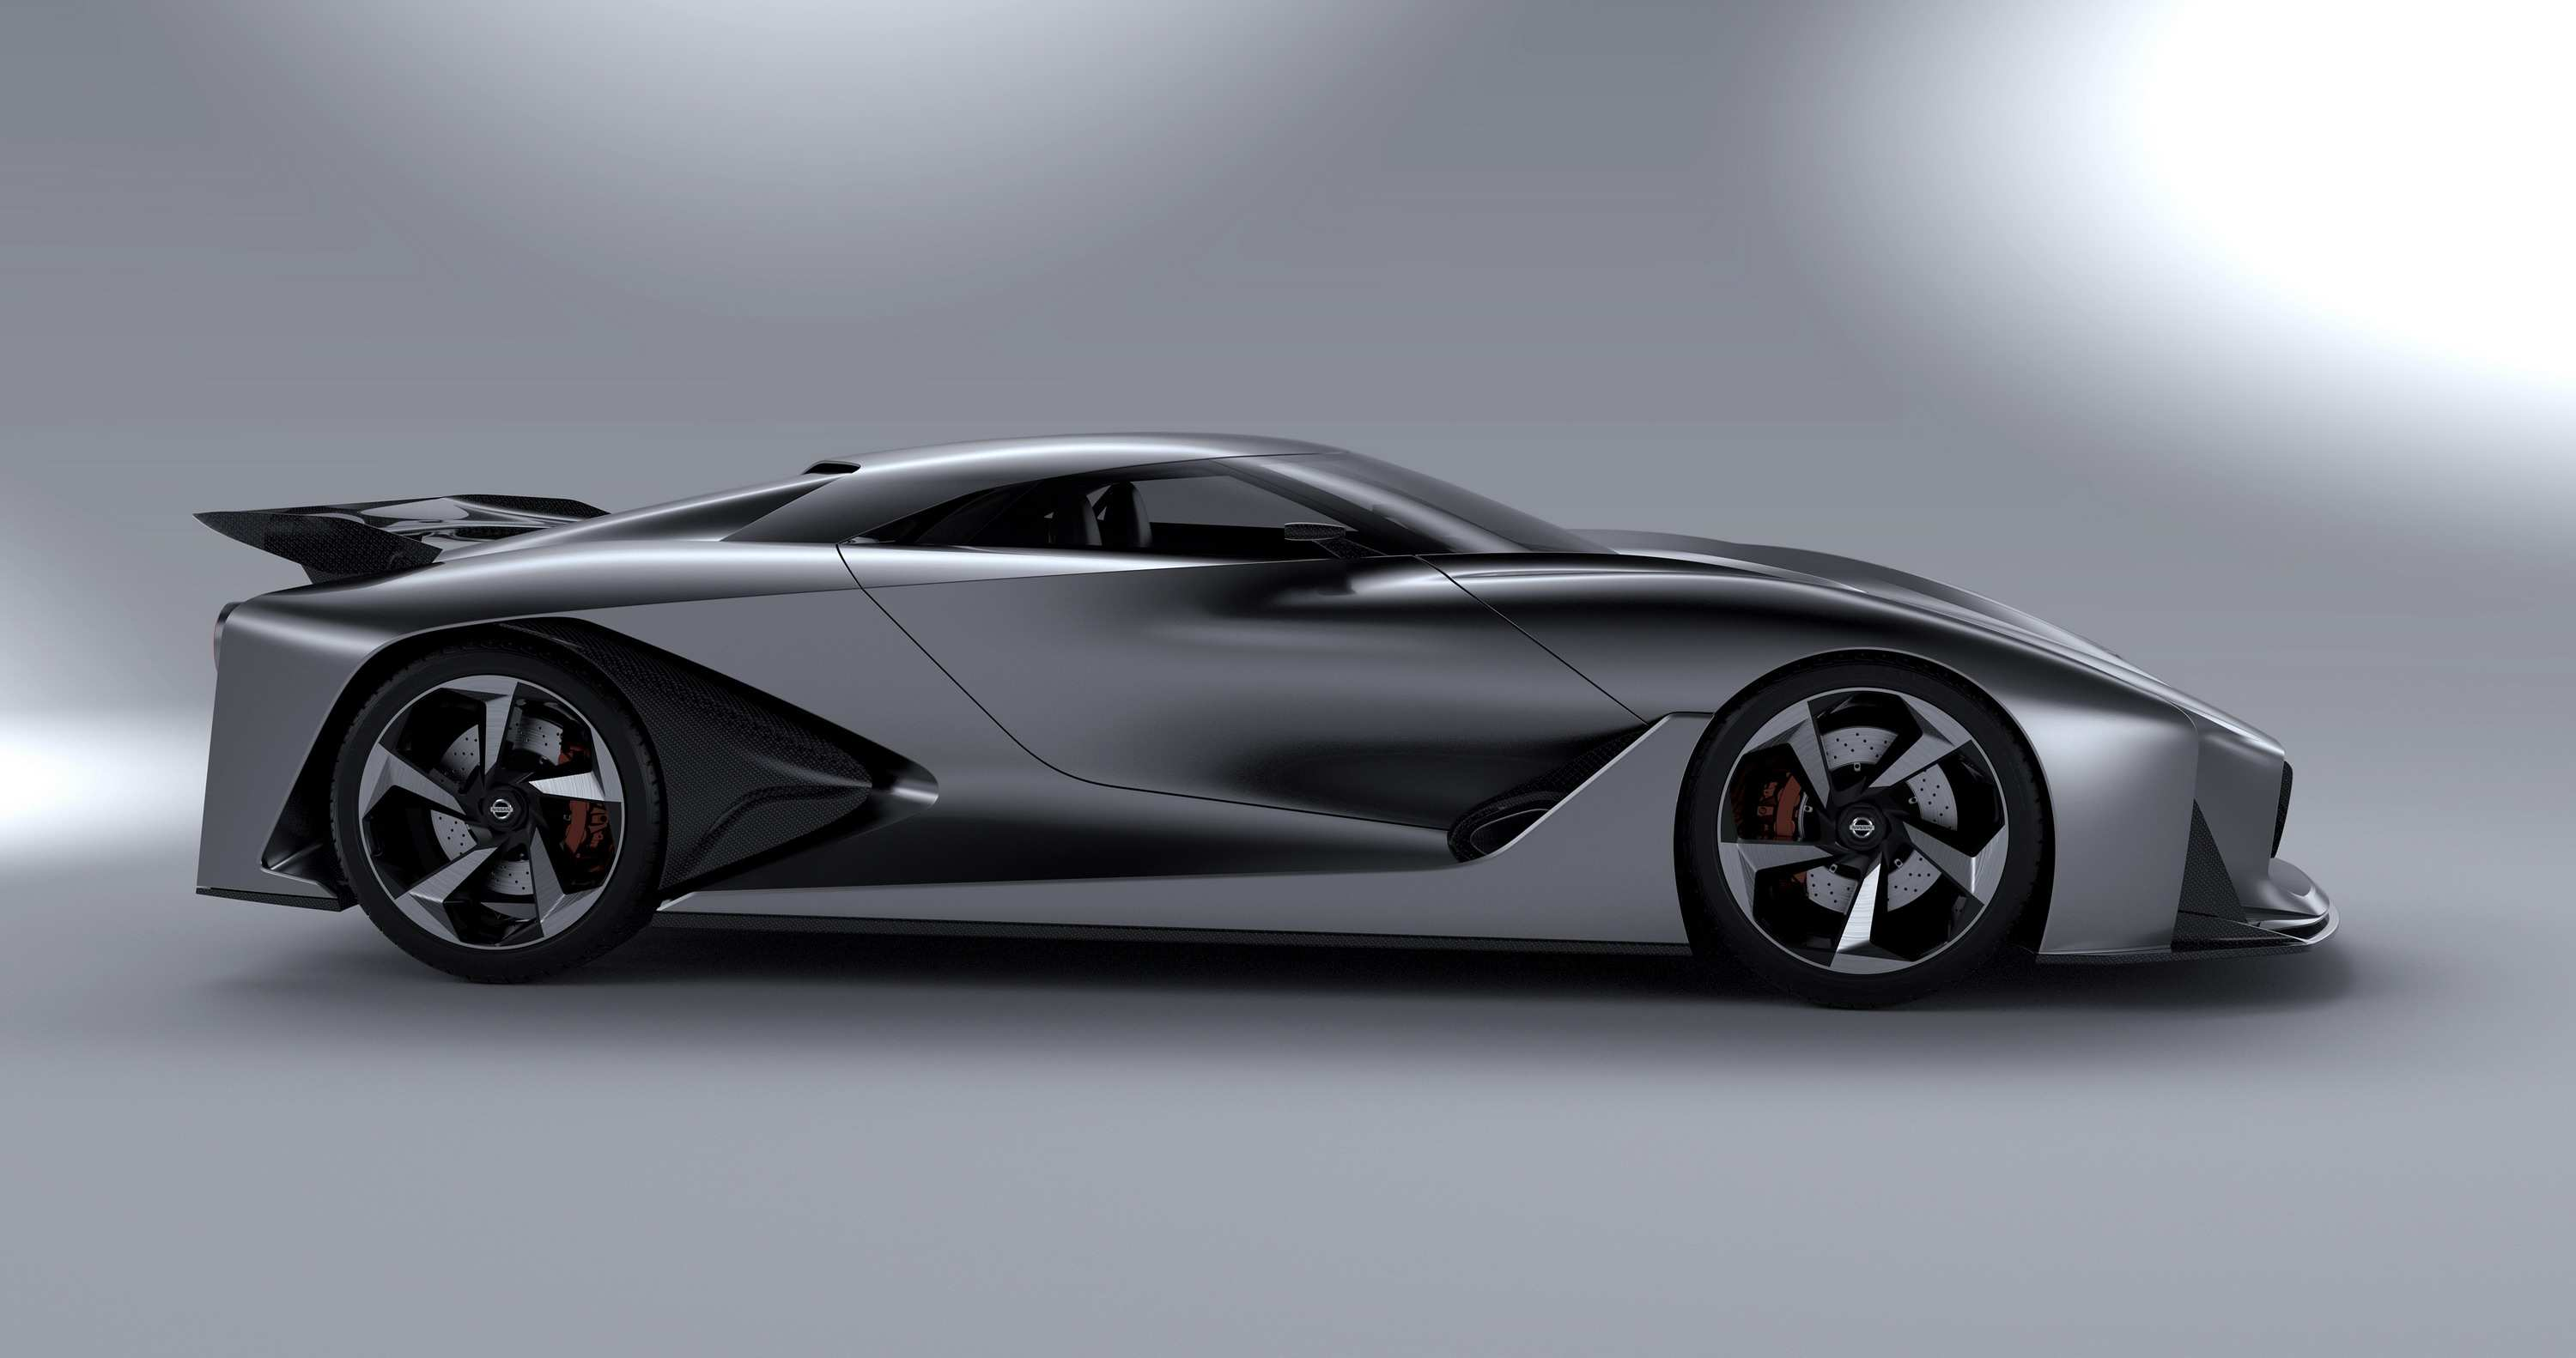 32 The Best Nissan Concept 2020 Top Speed Pricing